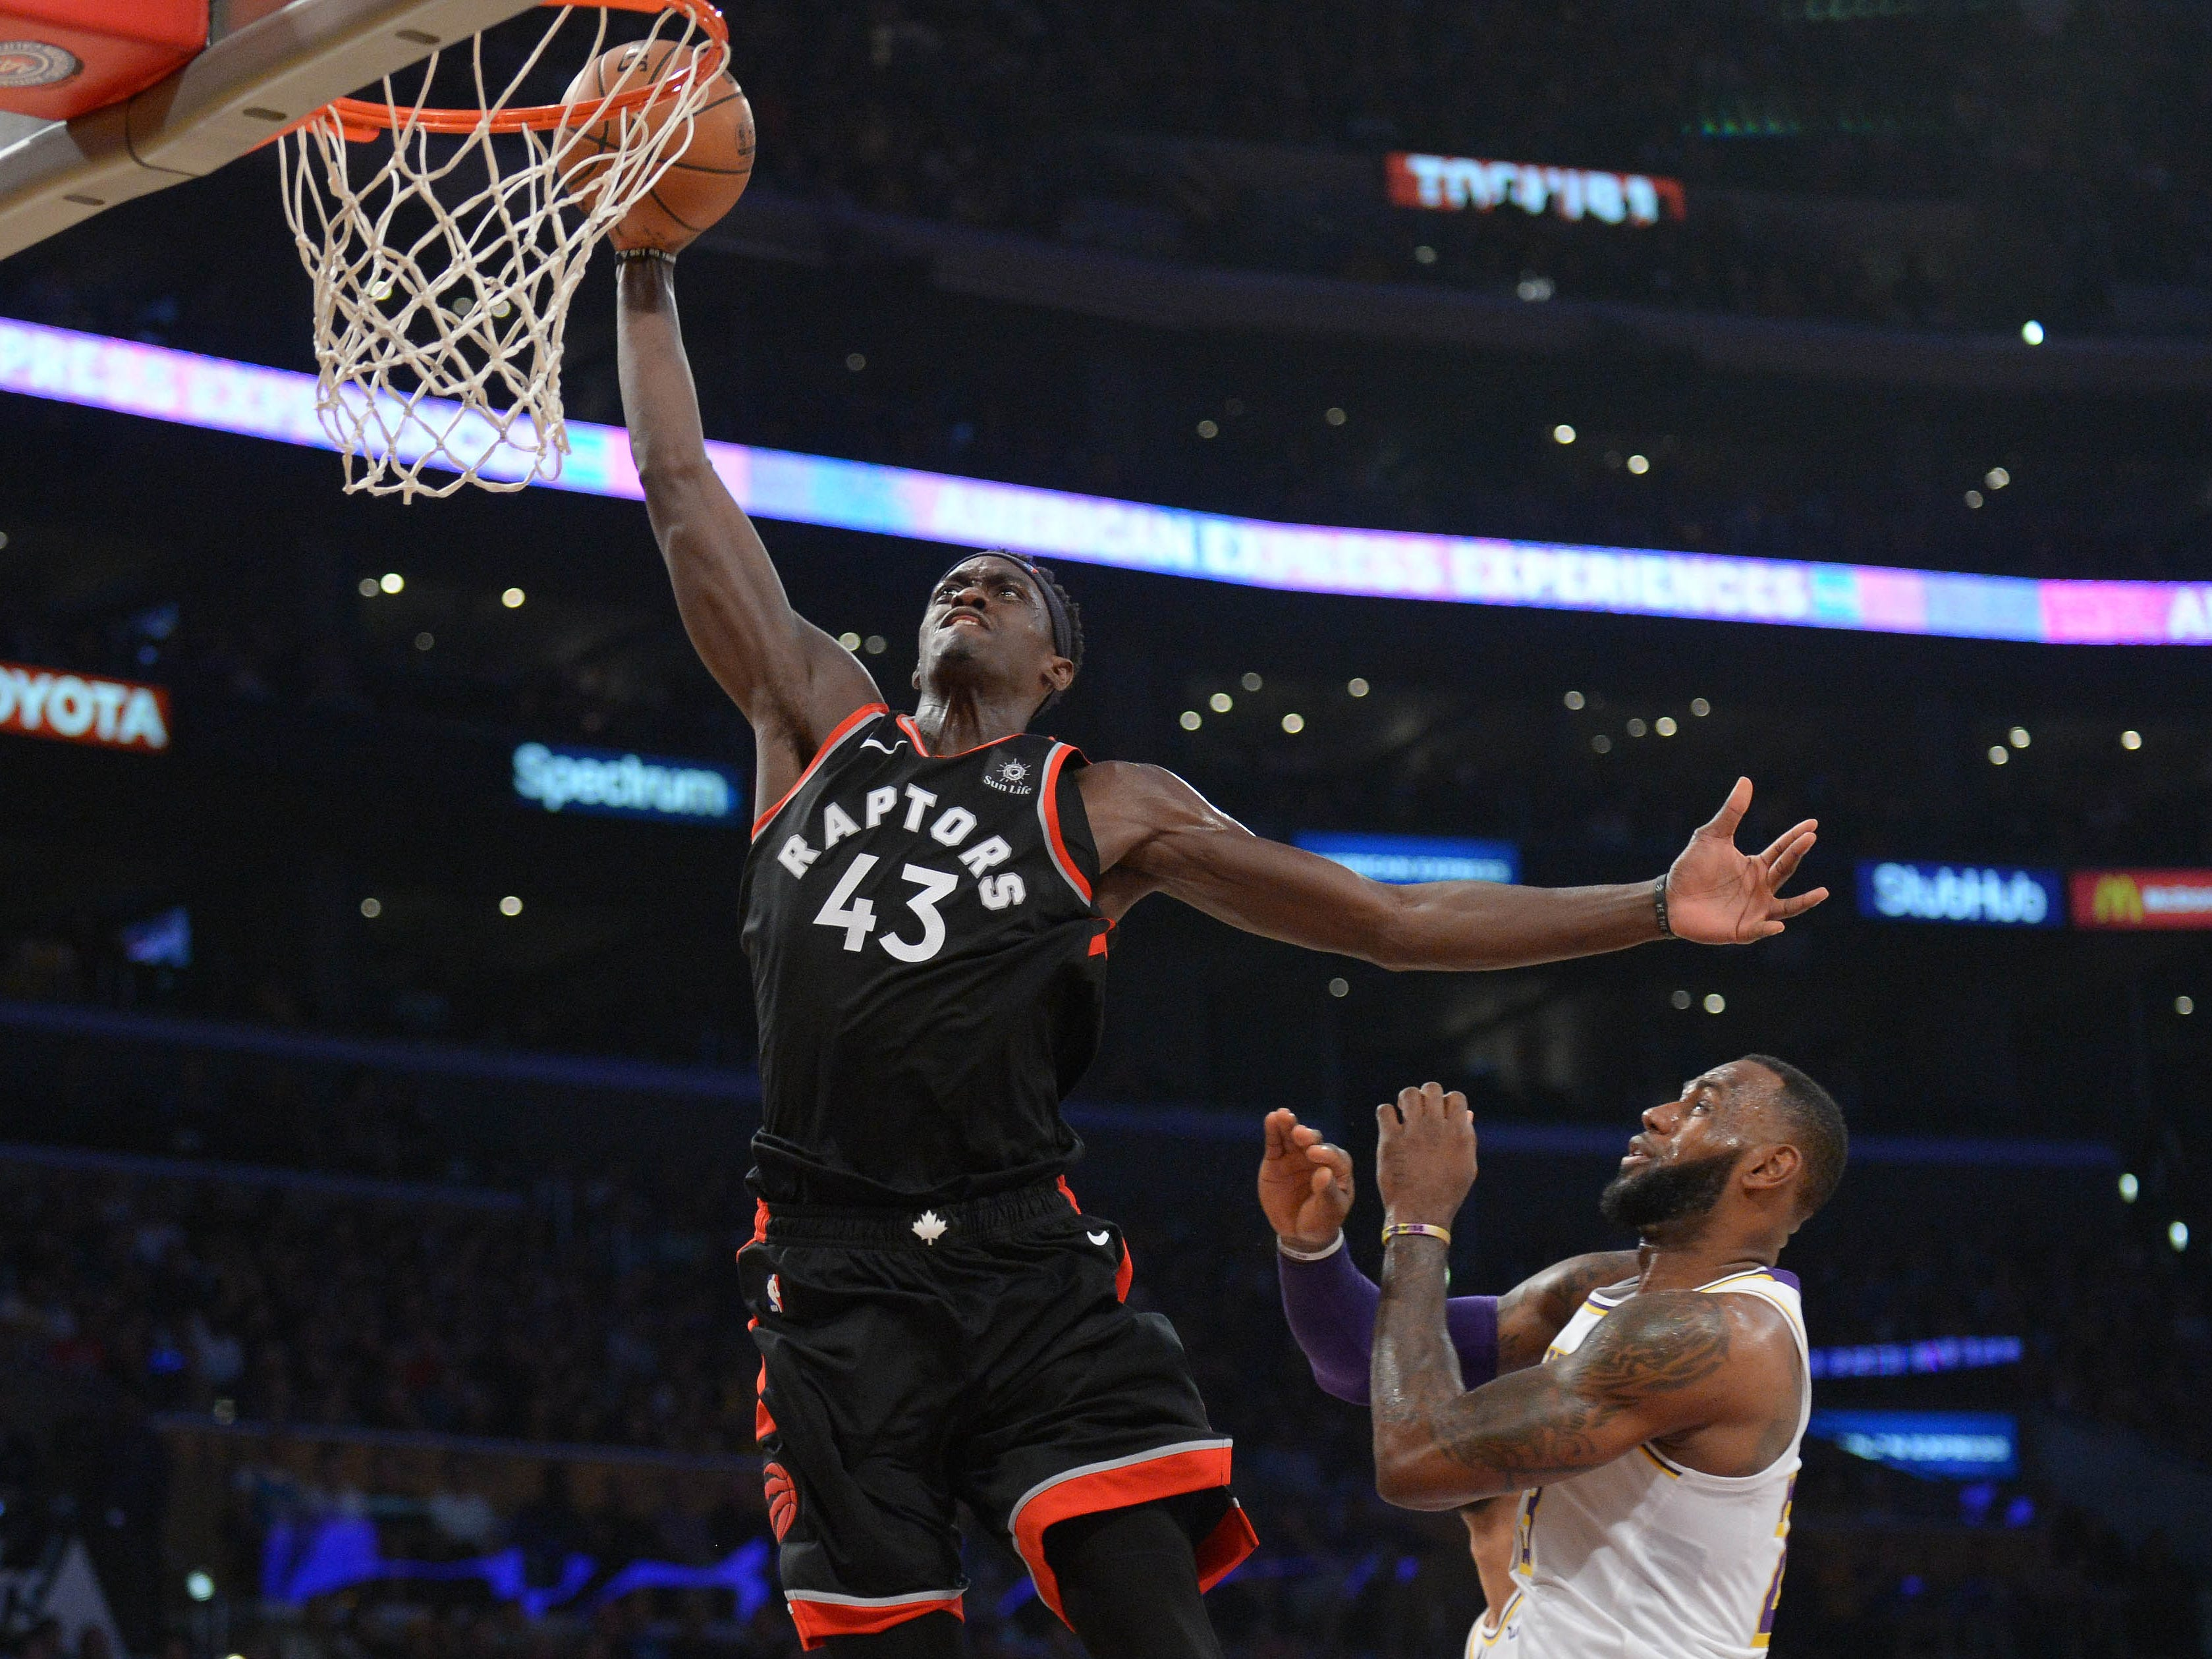 Nov. 4: Raptors forward Pascal Siakam throws down a one-handed flush on the break during the first half against the Lakers in Los Angeles.